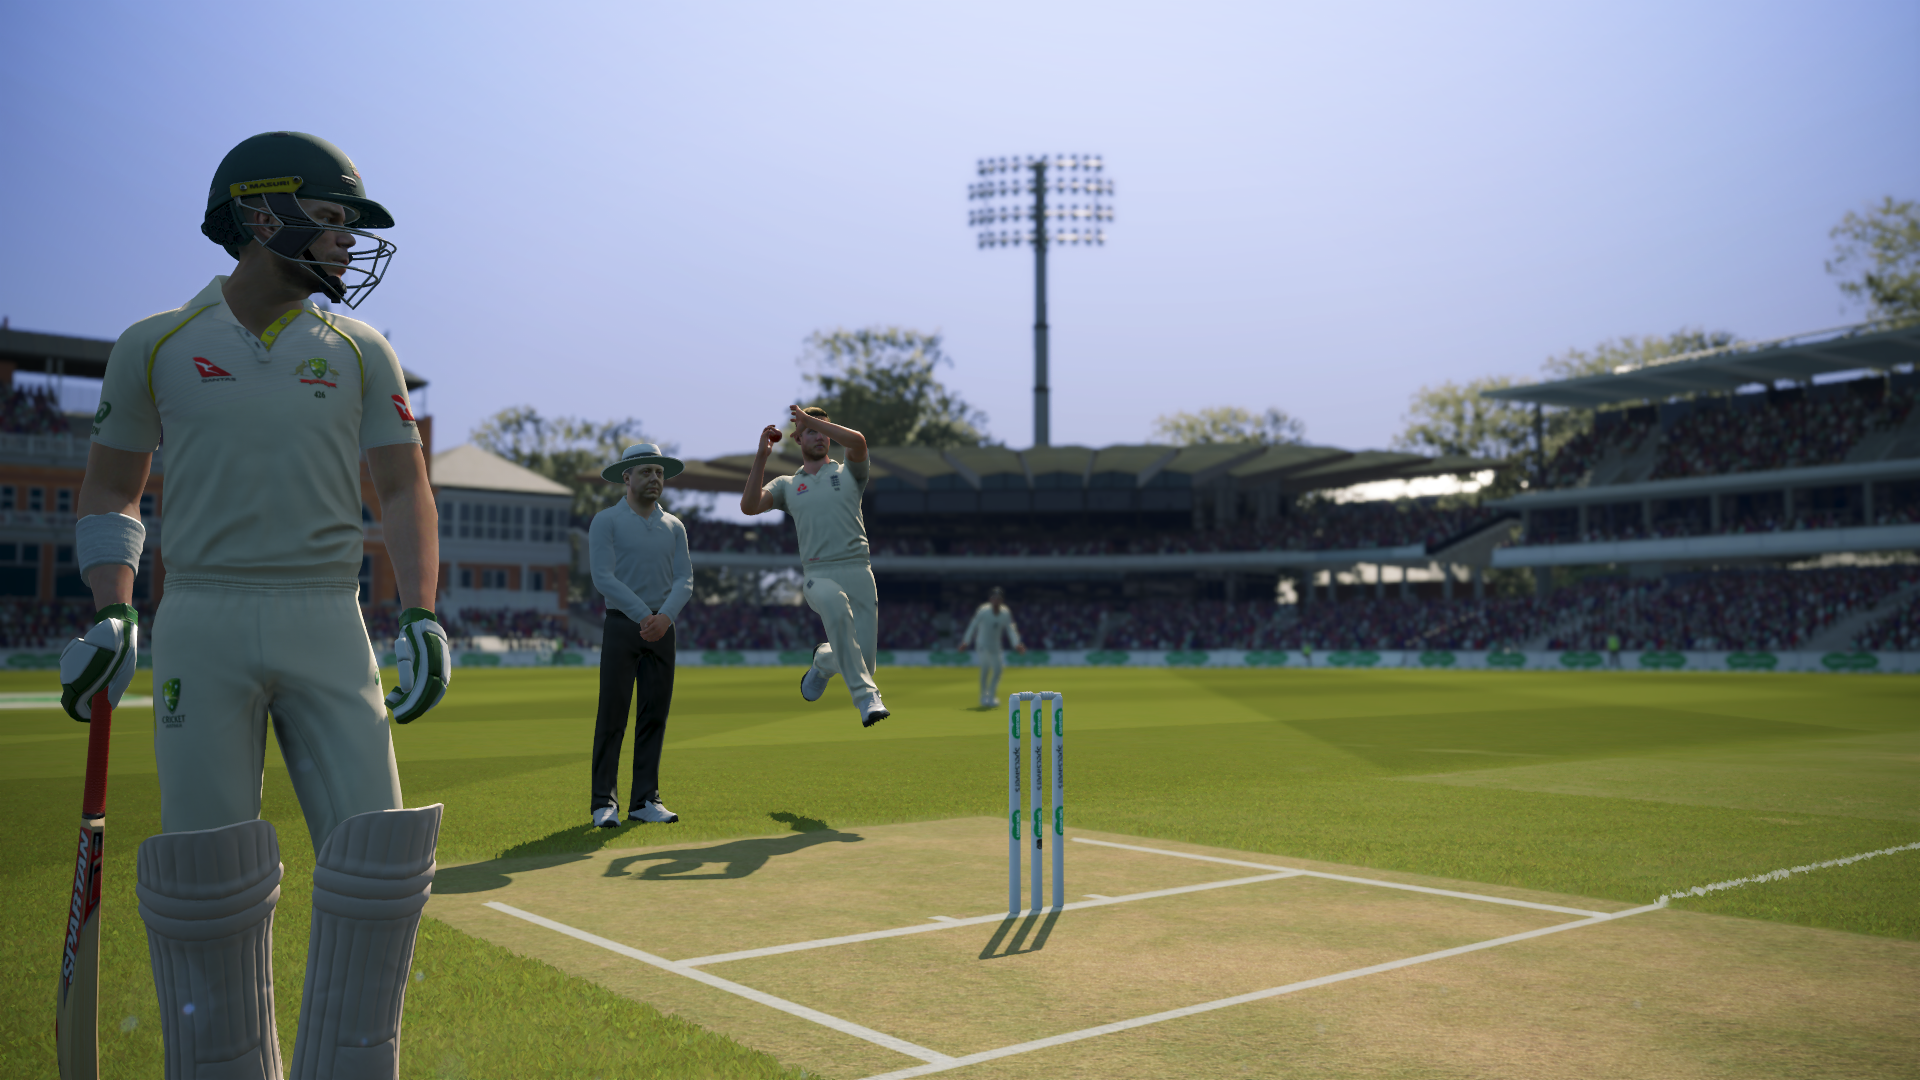 Cricket 19 Ashes Cricket Game Gets A Revamp